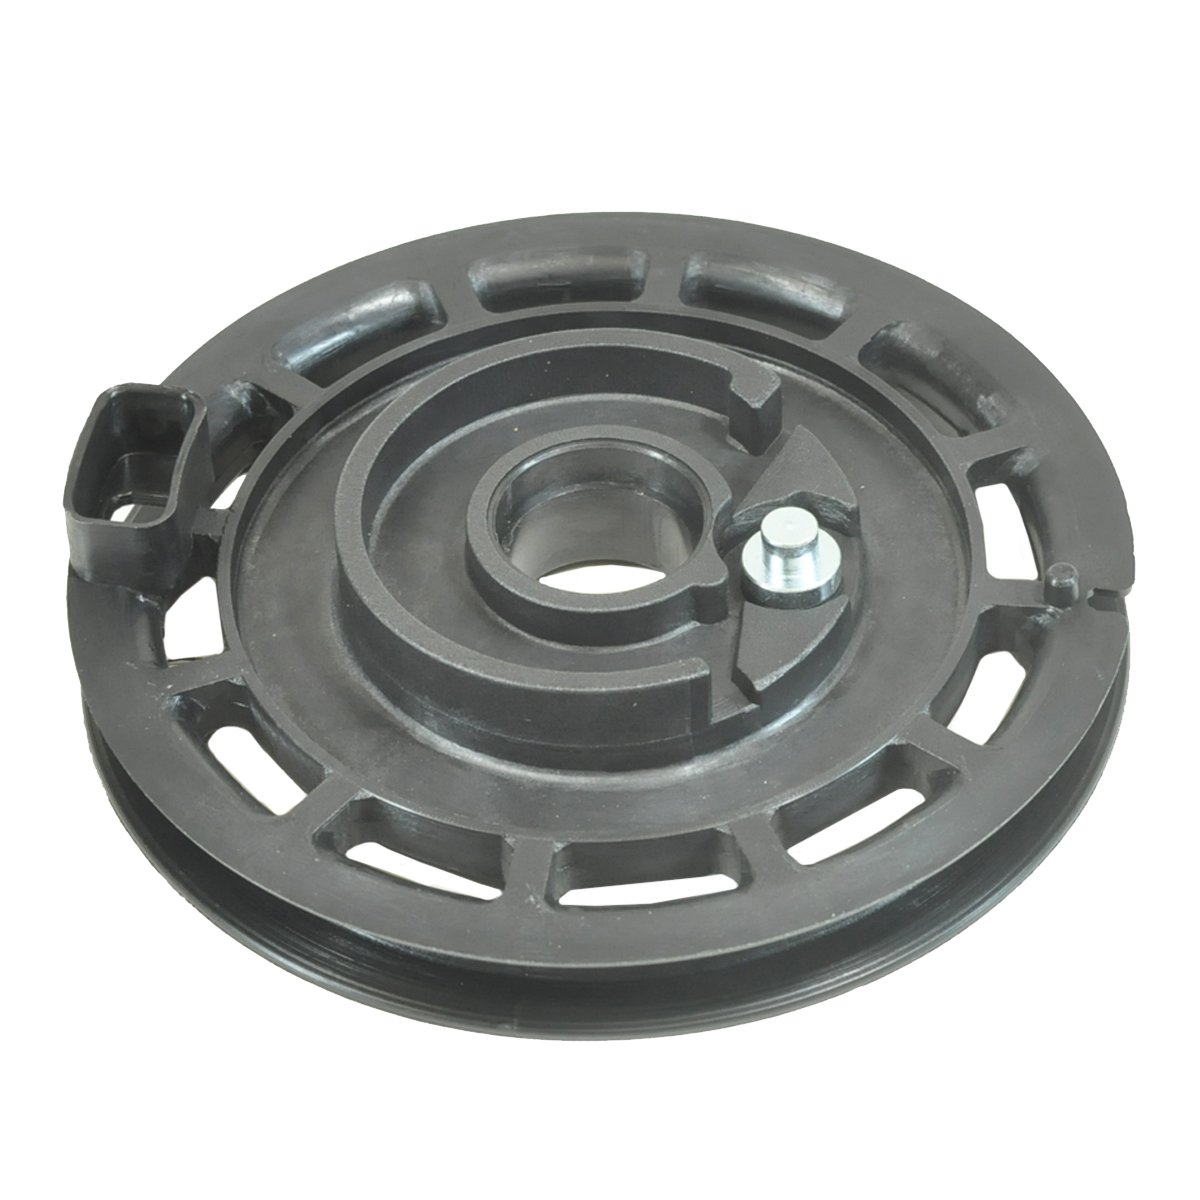 SPI, SM-11021, Rope Sheave Recoil Pulley Polaris snowmobiles replaces OEM #'s 1202453, 1204173, 5438366, 5631420, 5434936 & 1204331 by SPI